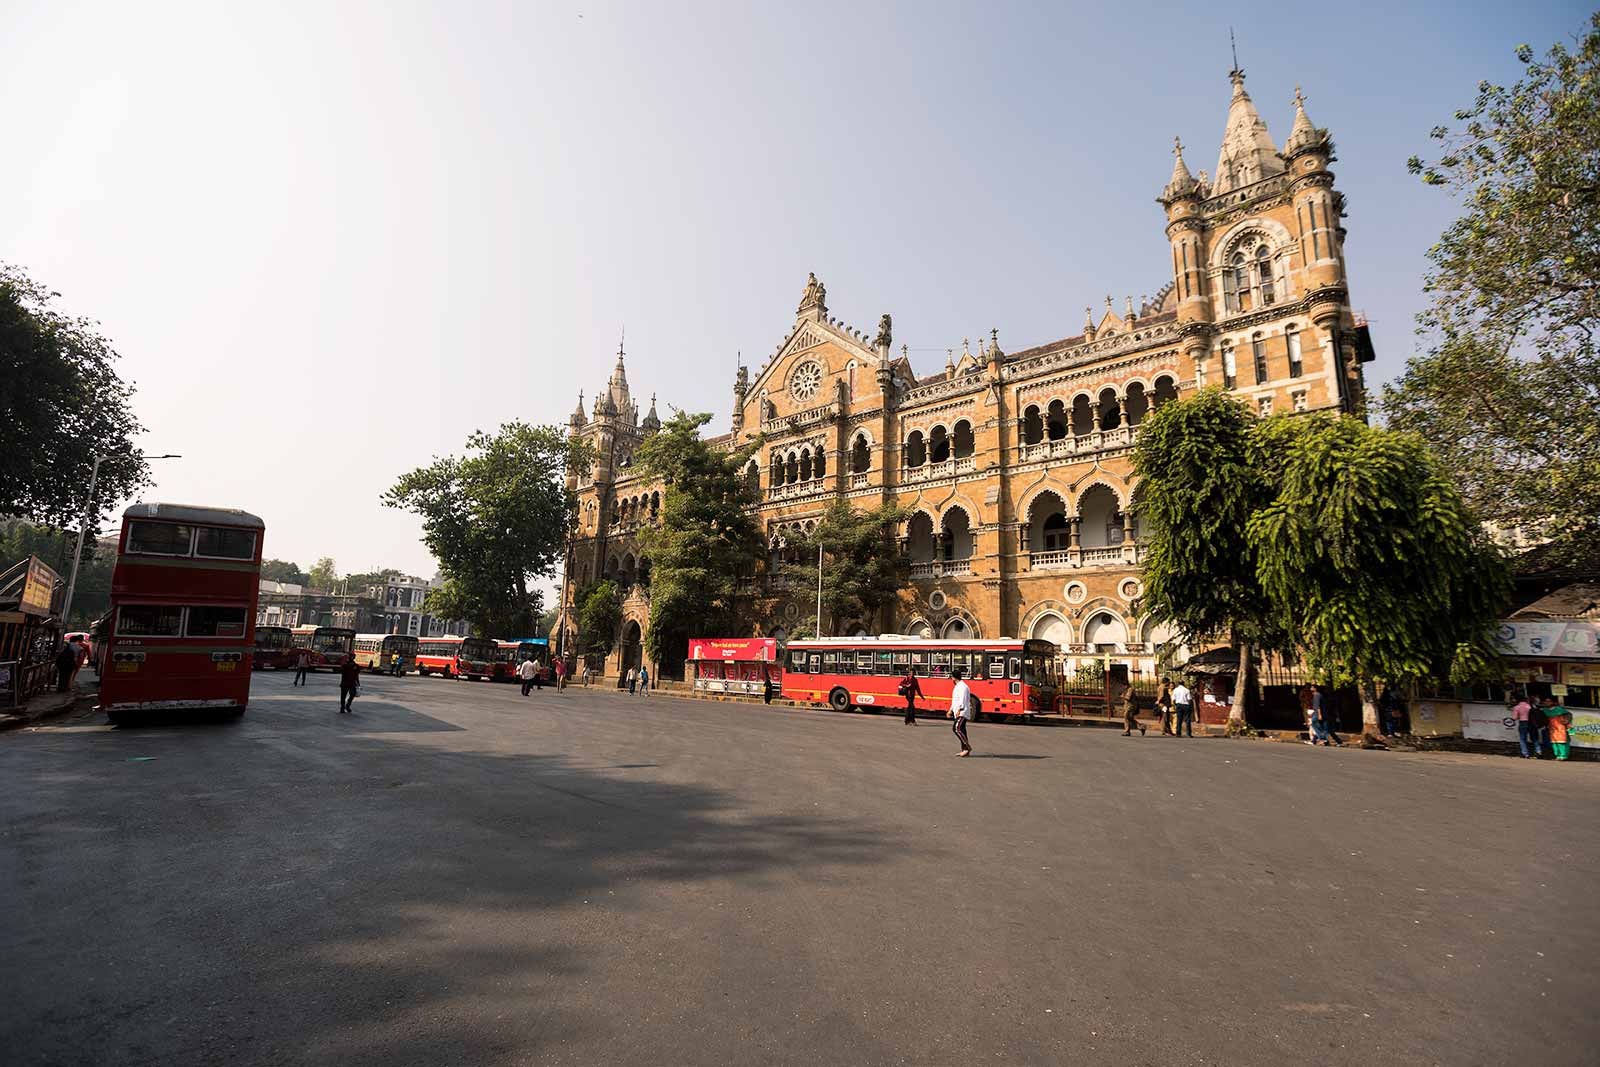 Chhatrapati Shivaji Terminus was built over 10 years, starting in 1878, according to a High Victorian Gothic design.